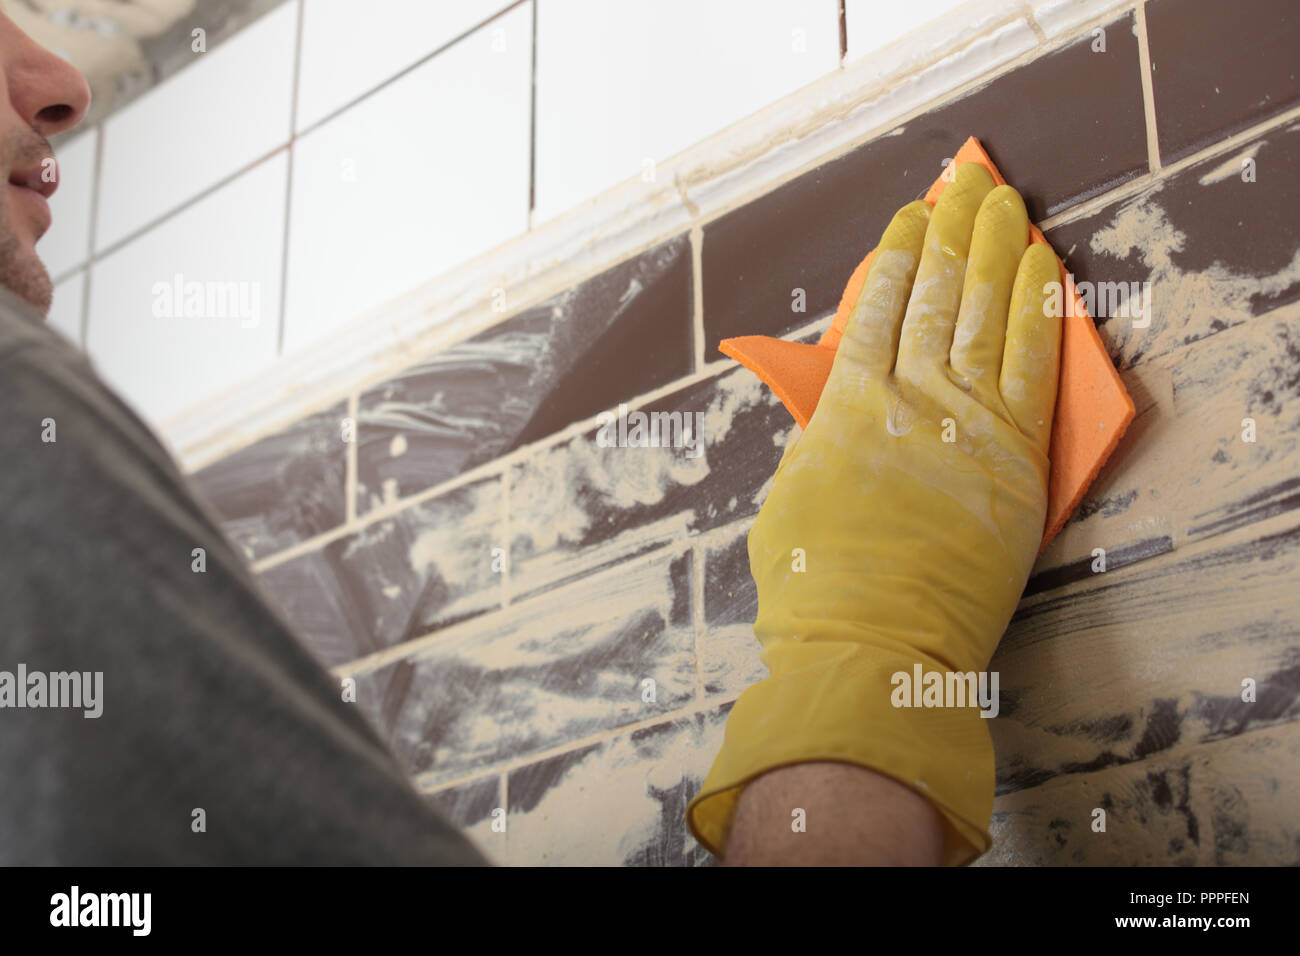 Contractor Grouting Ceramic Tiles On A Wall Stock Photo 220541965